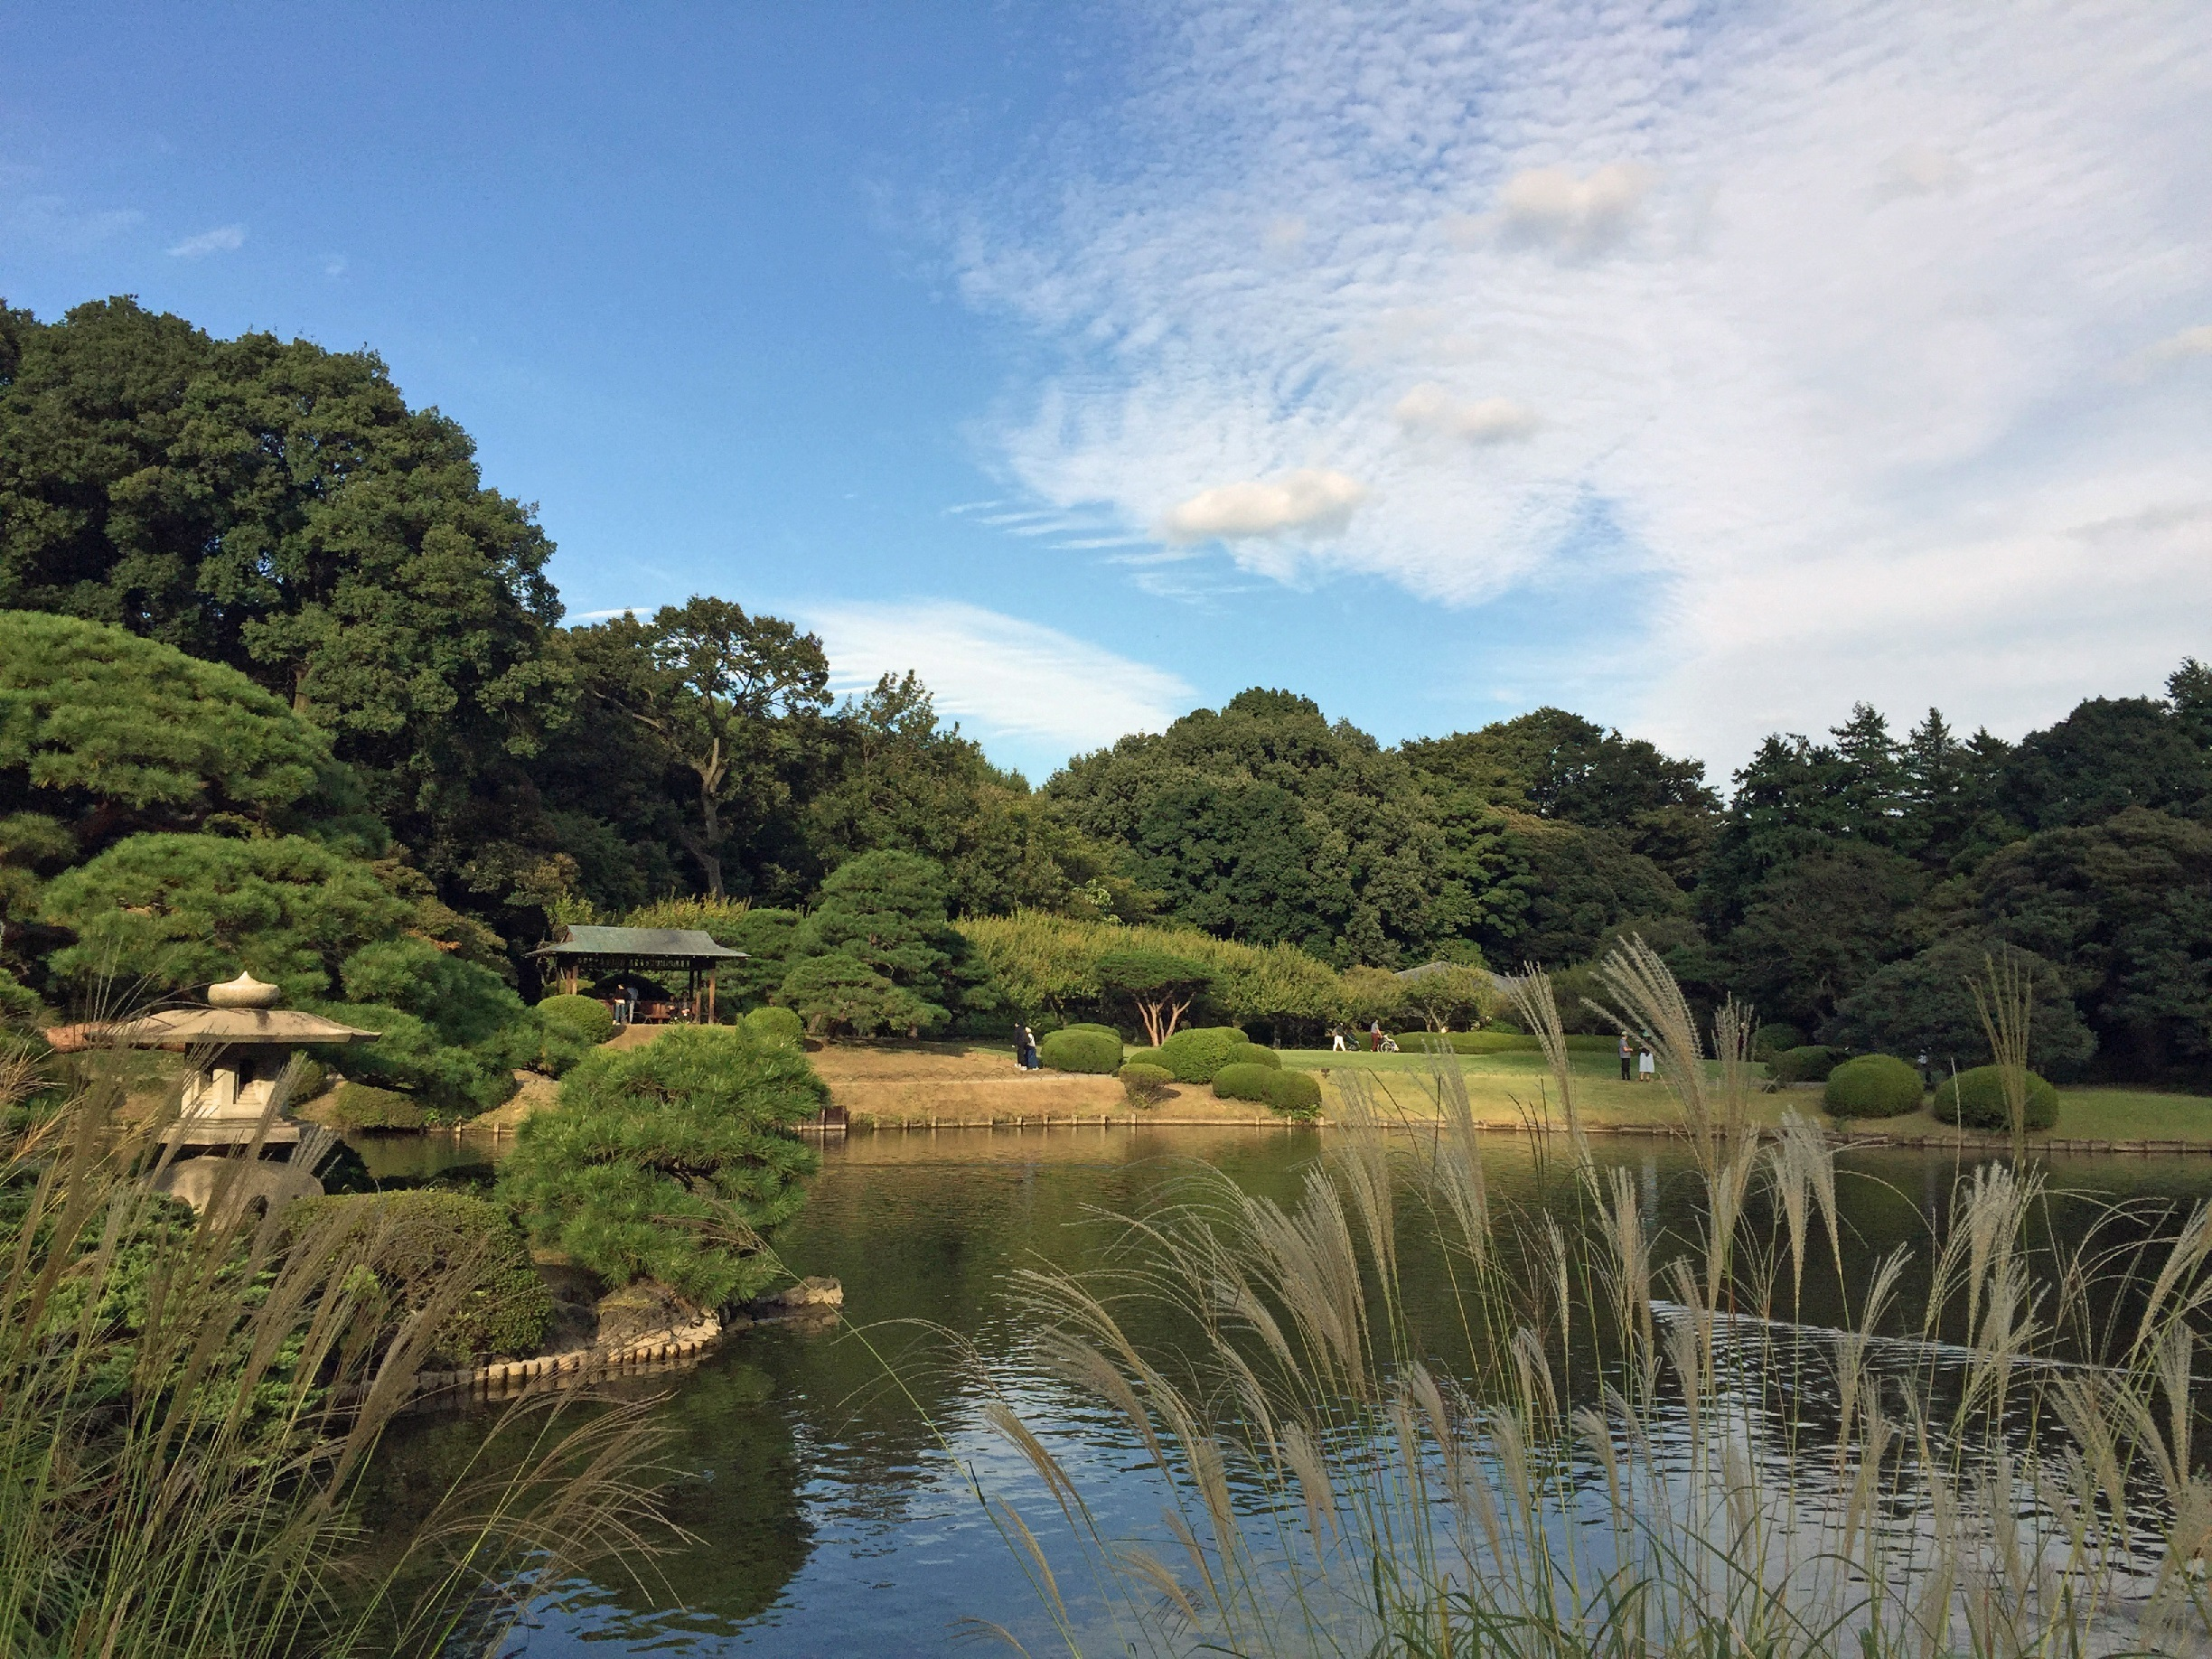 Major parks and gardens in Tokyo are temporarily closed due to Covid-19 coronavirus